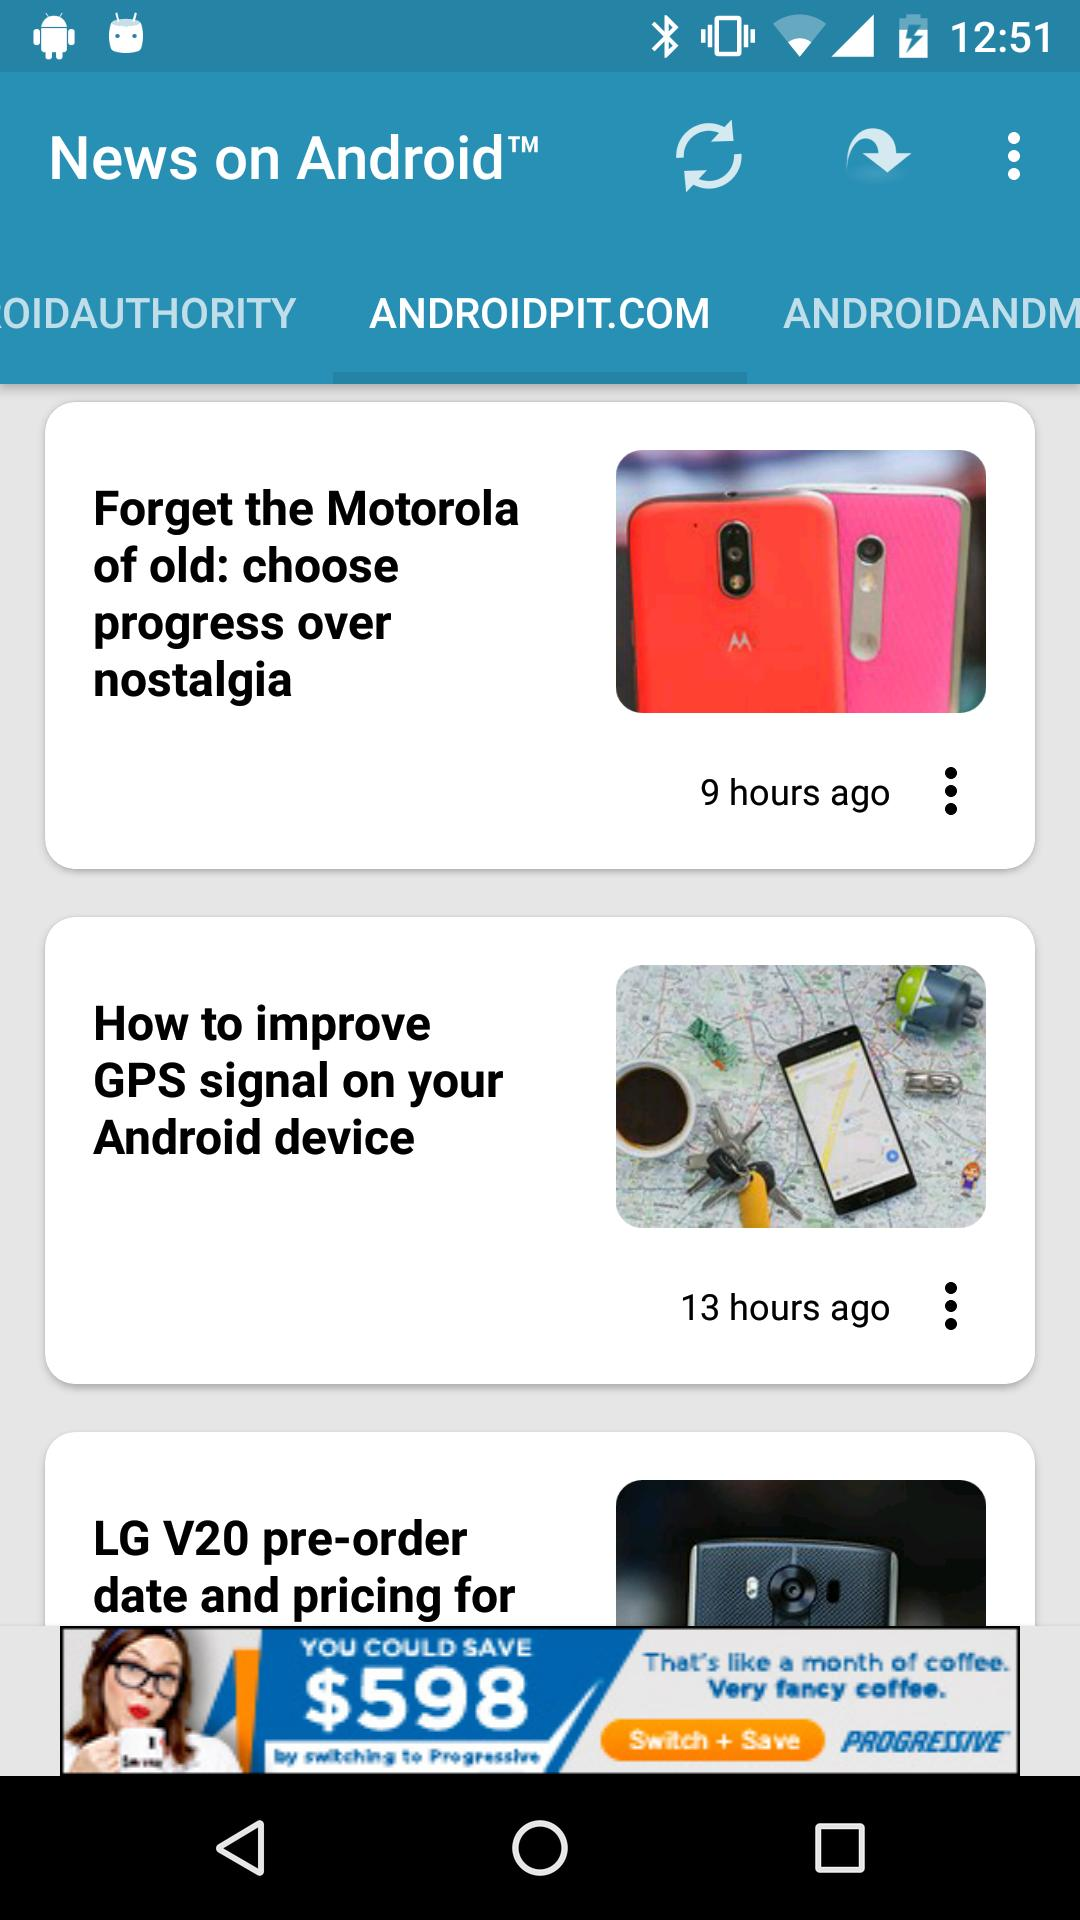 News on Android™ for Android - APK Download